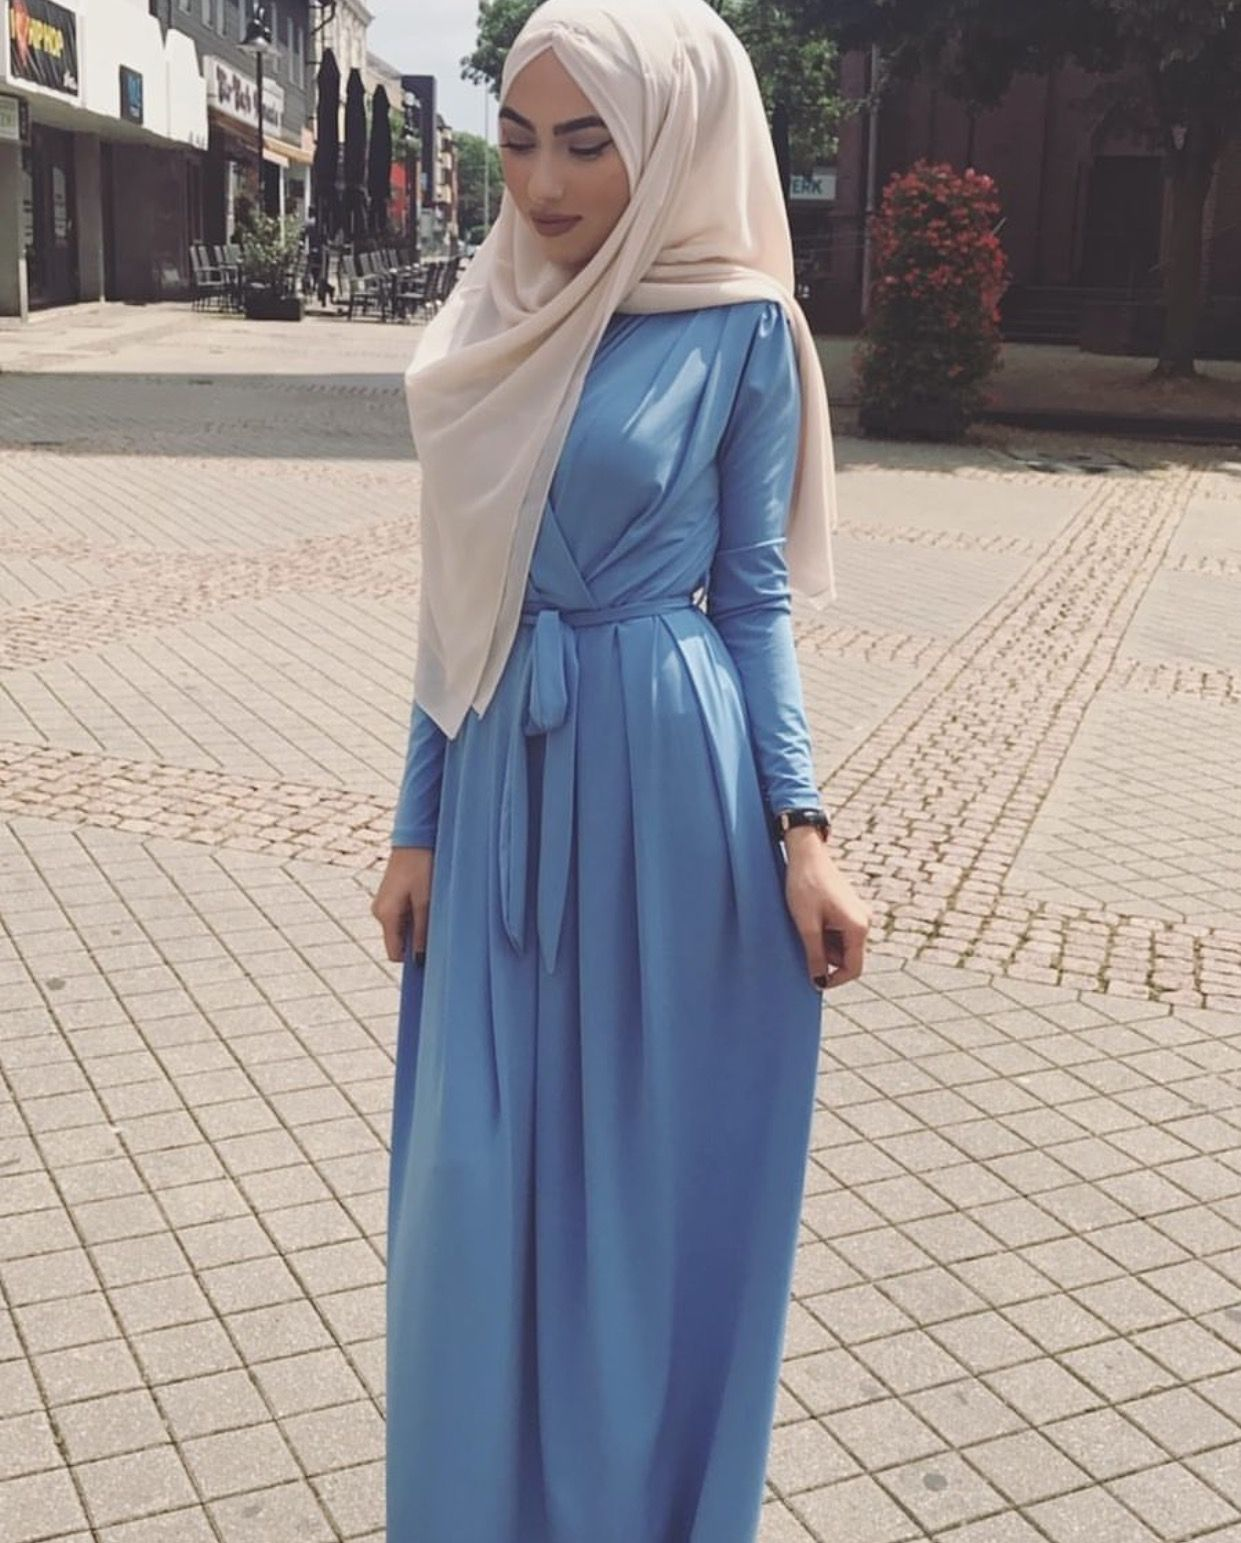 Hijab Style U003c3 I Lov This Bleu But I Donu0027t Think The Foular